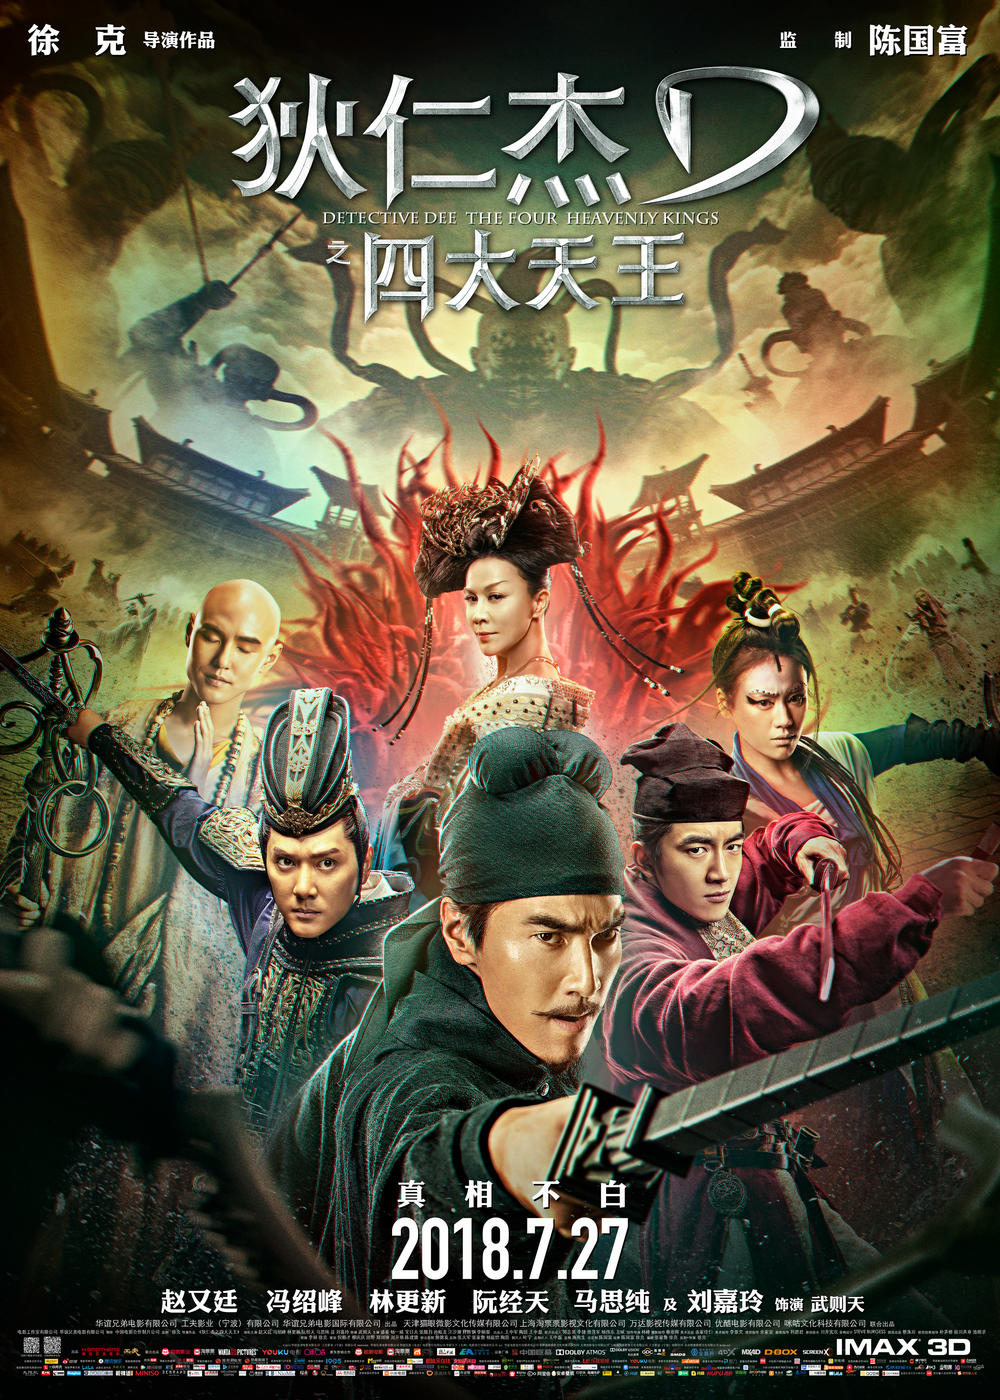 Detective Dee The Four Heavenly Kings (2018) Chinese Movie HDRip 720p AAC